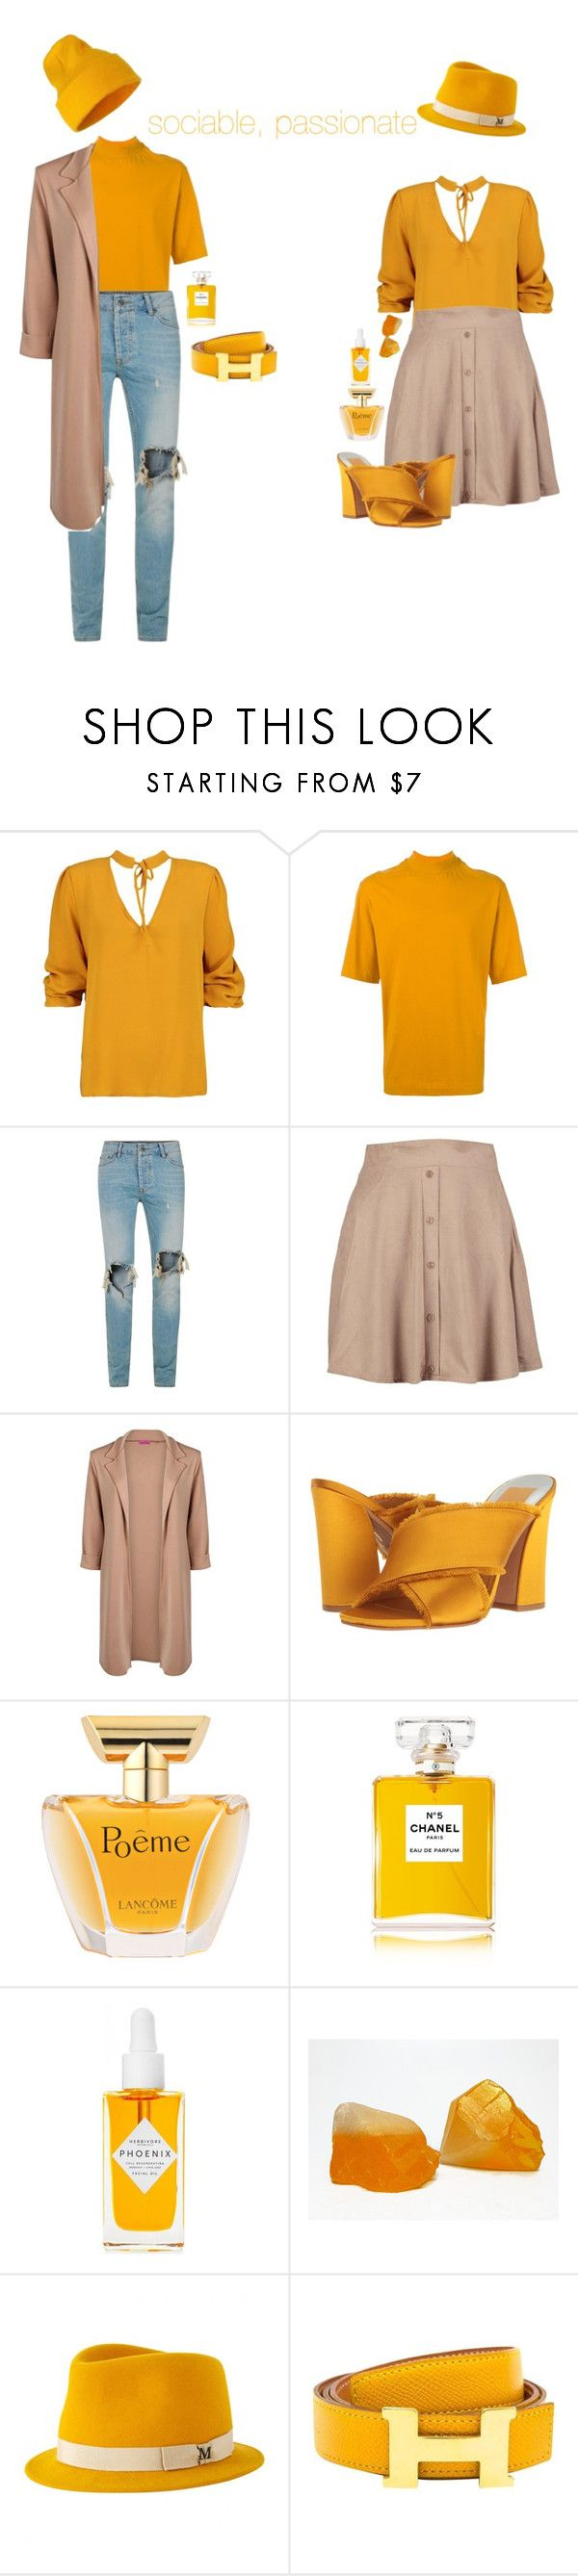 """gemini"" by sweeeetcaroline ❤ liked on Polyvore featuring Boohoo, Topman, Dolce Vita, Lancôme, Chanel, Herbivore, Maison Michel and Hermès"